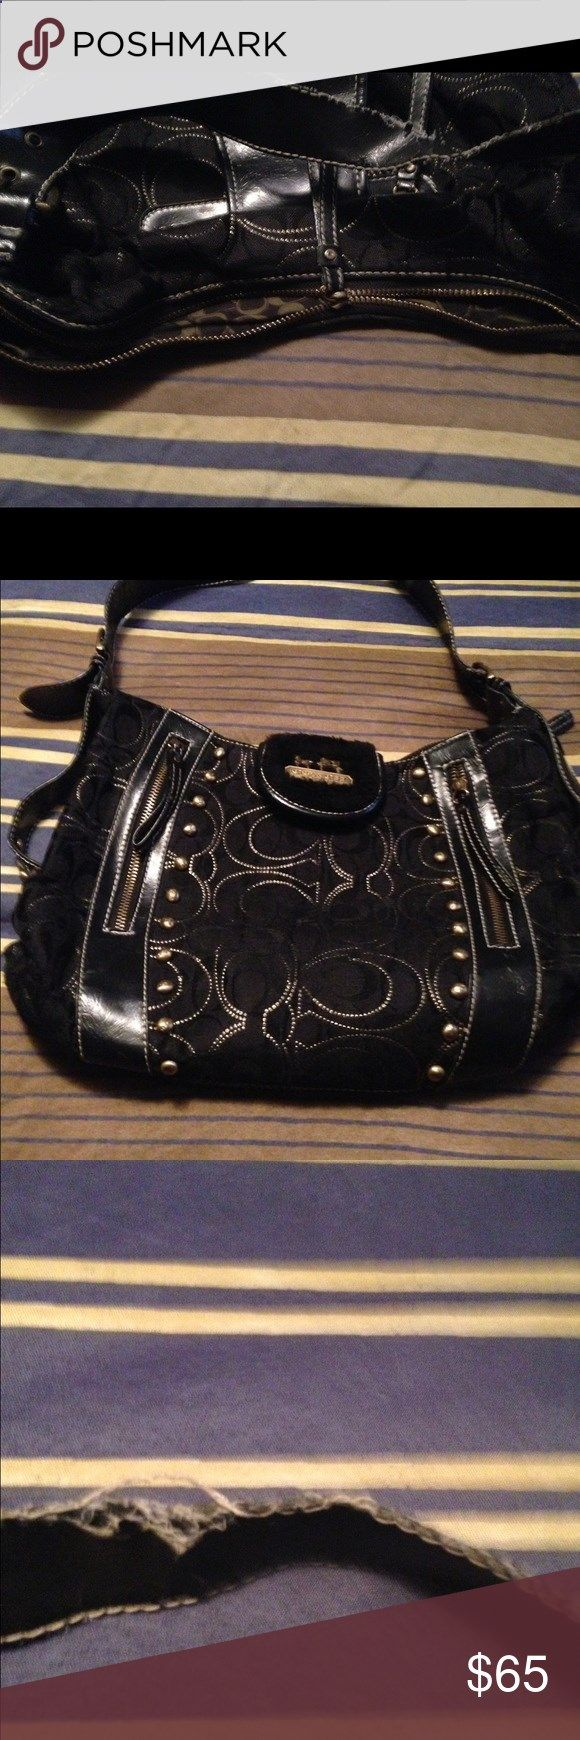 Coach purse Black coach purse zipper needs repair Coach Bags Shoulder Bags